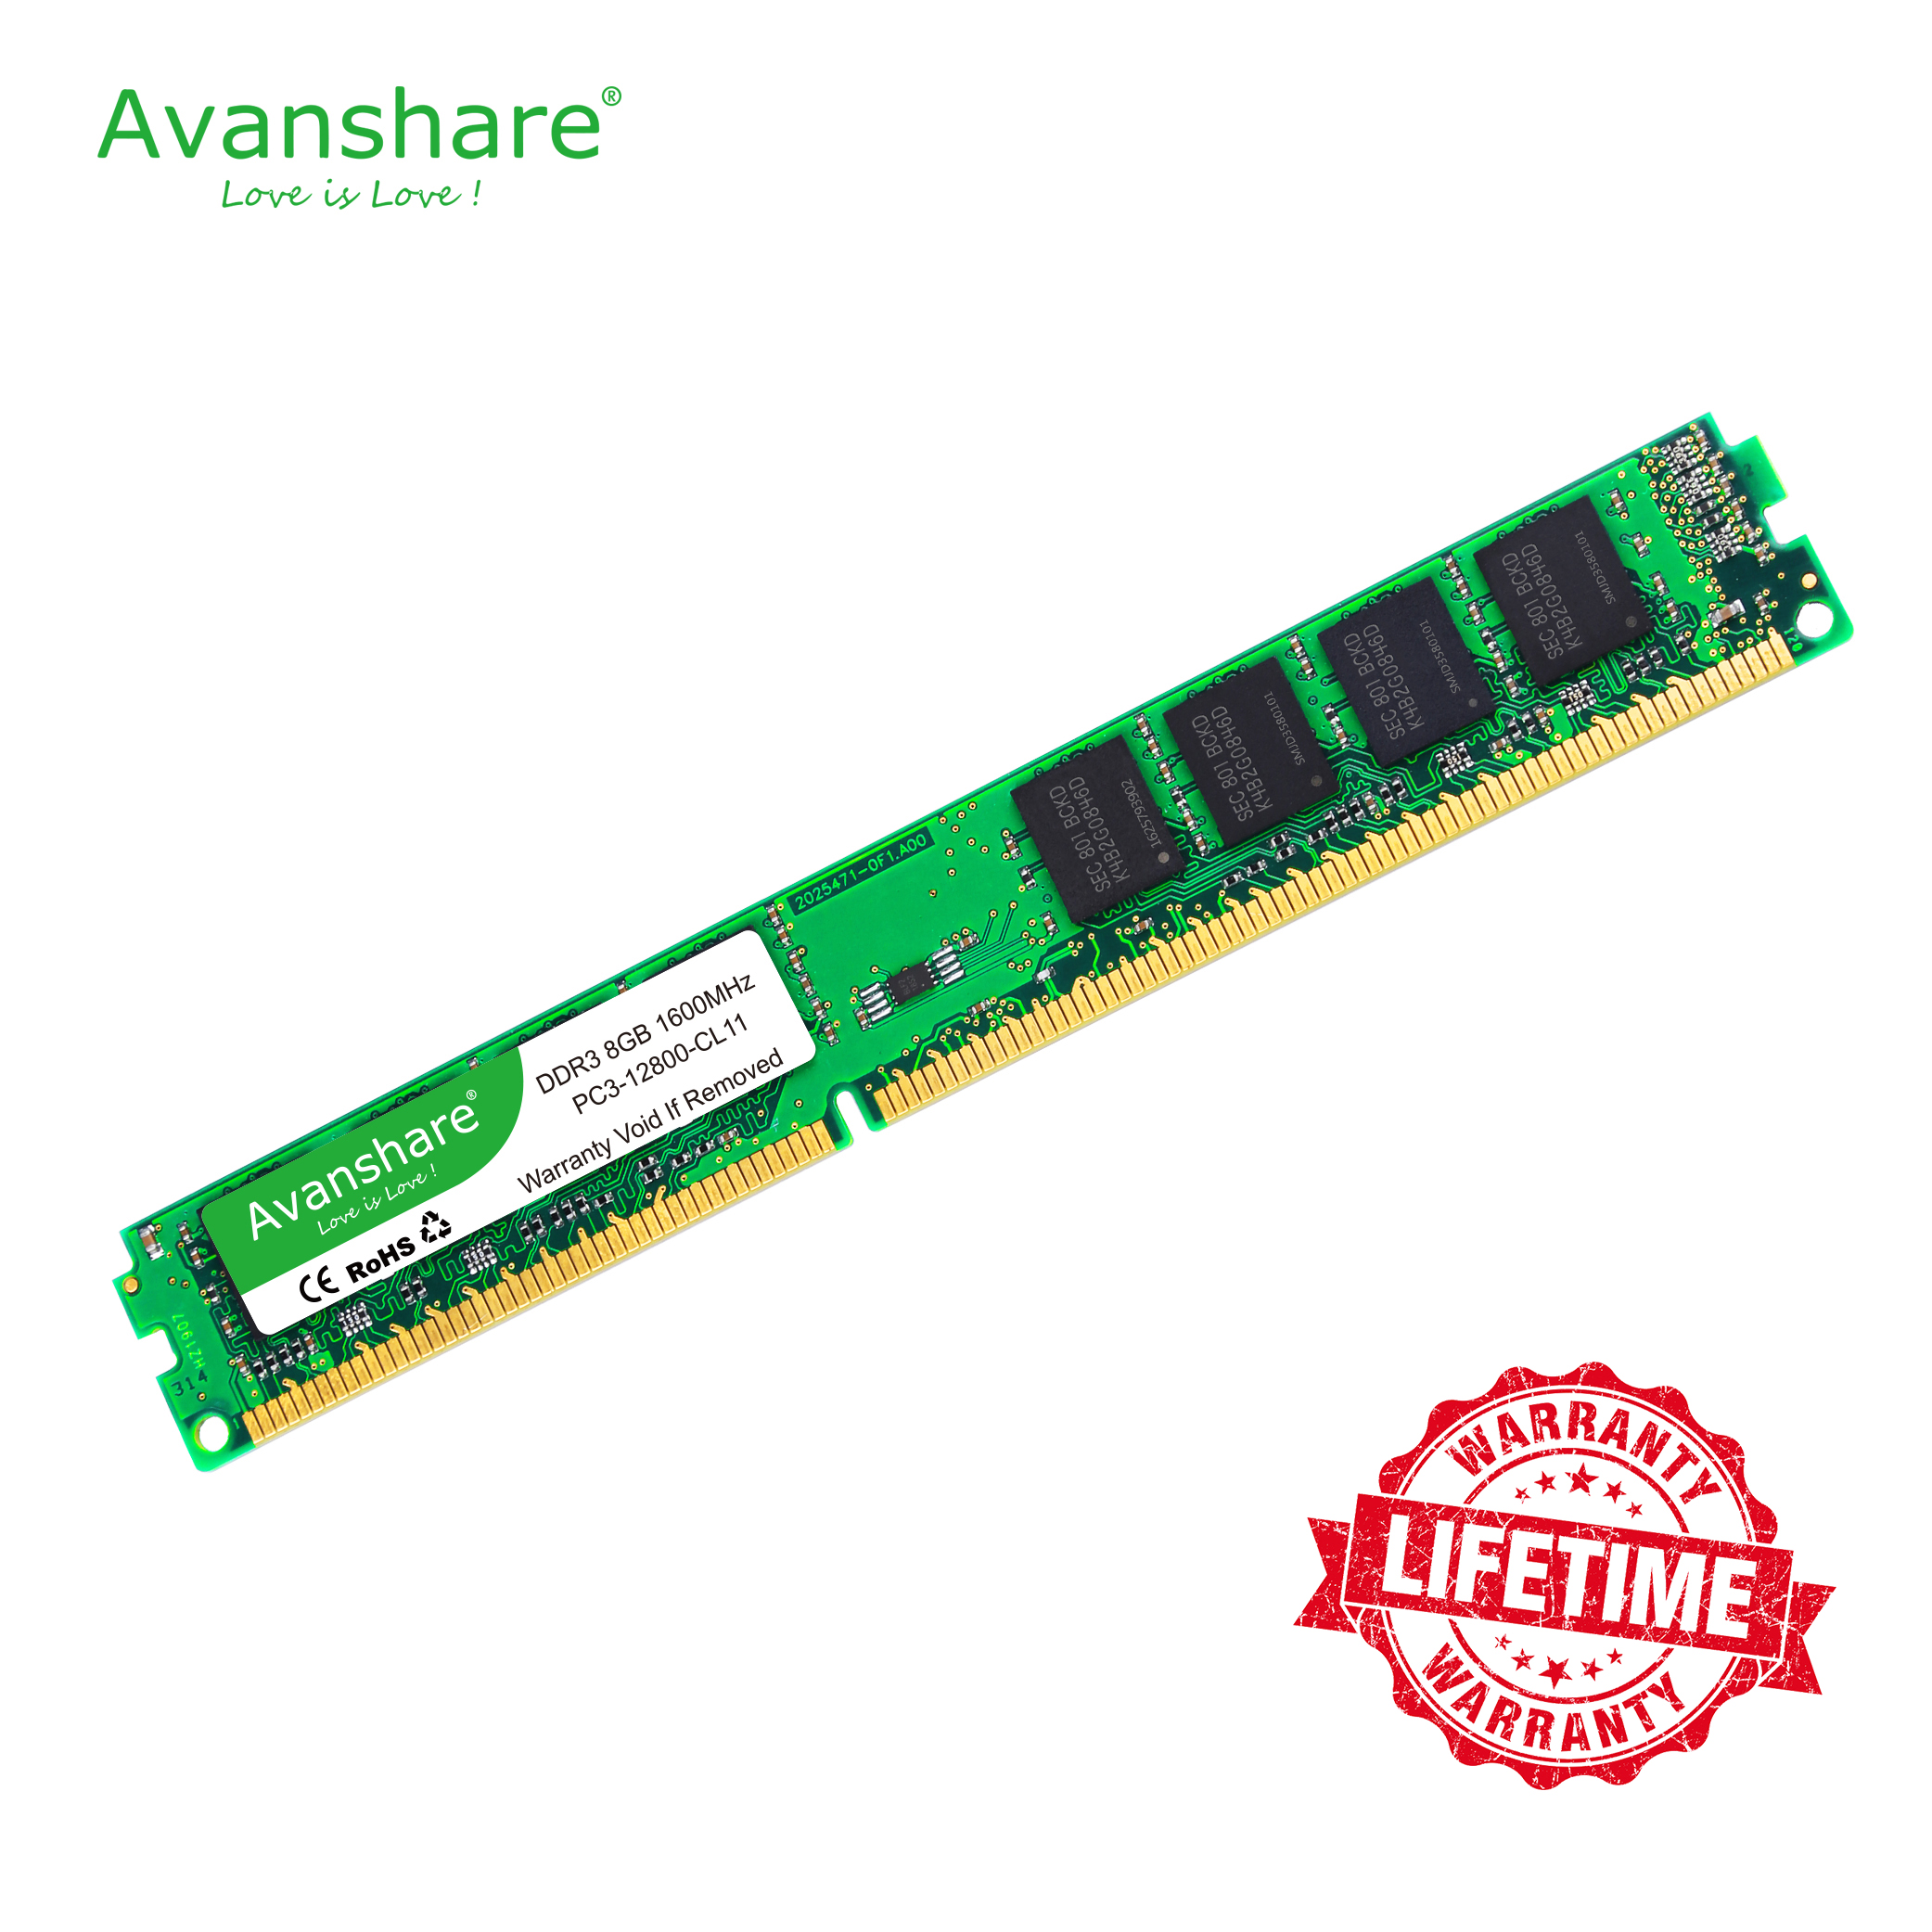 memory <font><b>ddr3</b></font> 8gb for desktop pc 1600MHz ram <font><b>ddr3</b></font> 1600 compatible <font><b>ddr3</b></font> desktop 4gb 1333MHz sdram <font><b>1066mhz</b></font> by Avanshare image